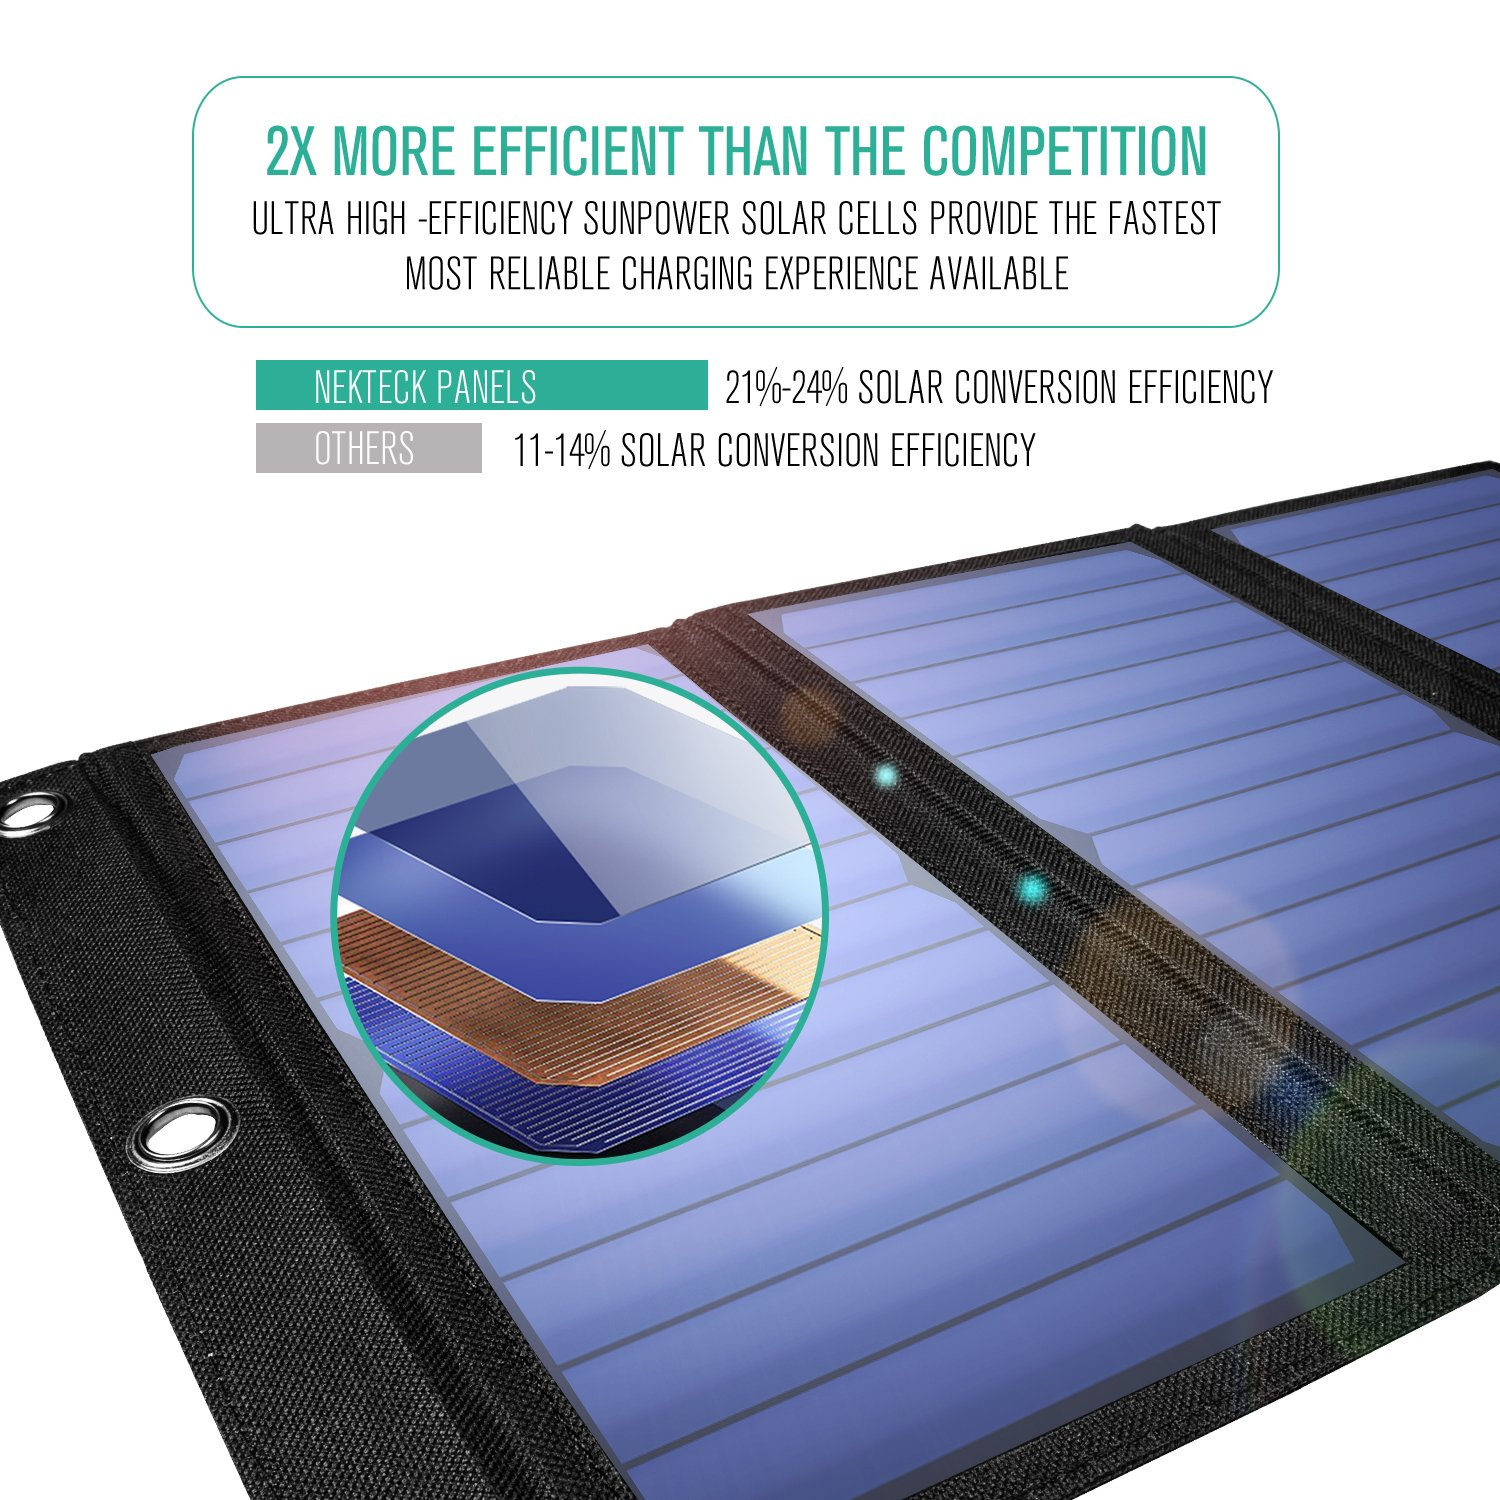 Nekteck 21W Solar Charger with 2-Port USB Charger Build with High Efficiency Solar Panel Cell for iPhone 6s / 6 / Plus, SE, iPad, Galaxy S6/S7/ Edge/Plus, Nexus 5X/6P, Any USB Devices, and More by Nekteck (Image #2)